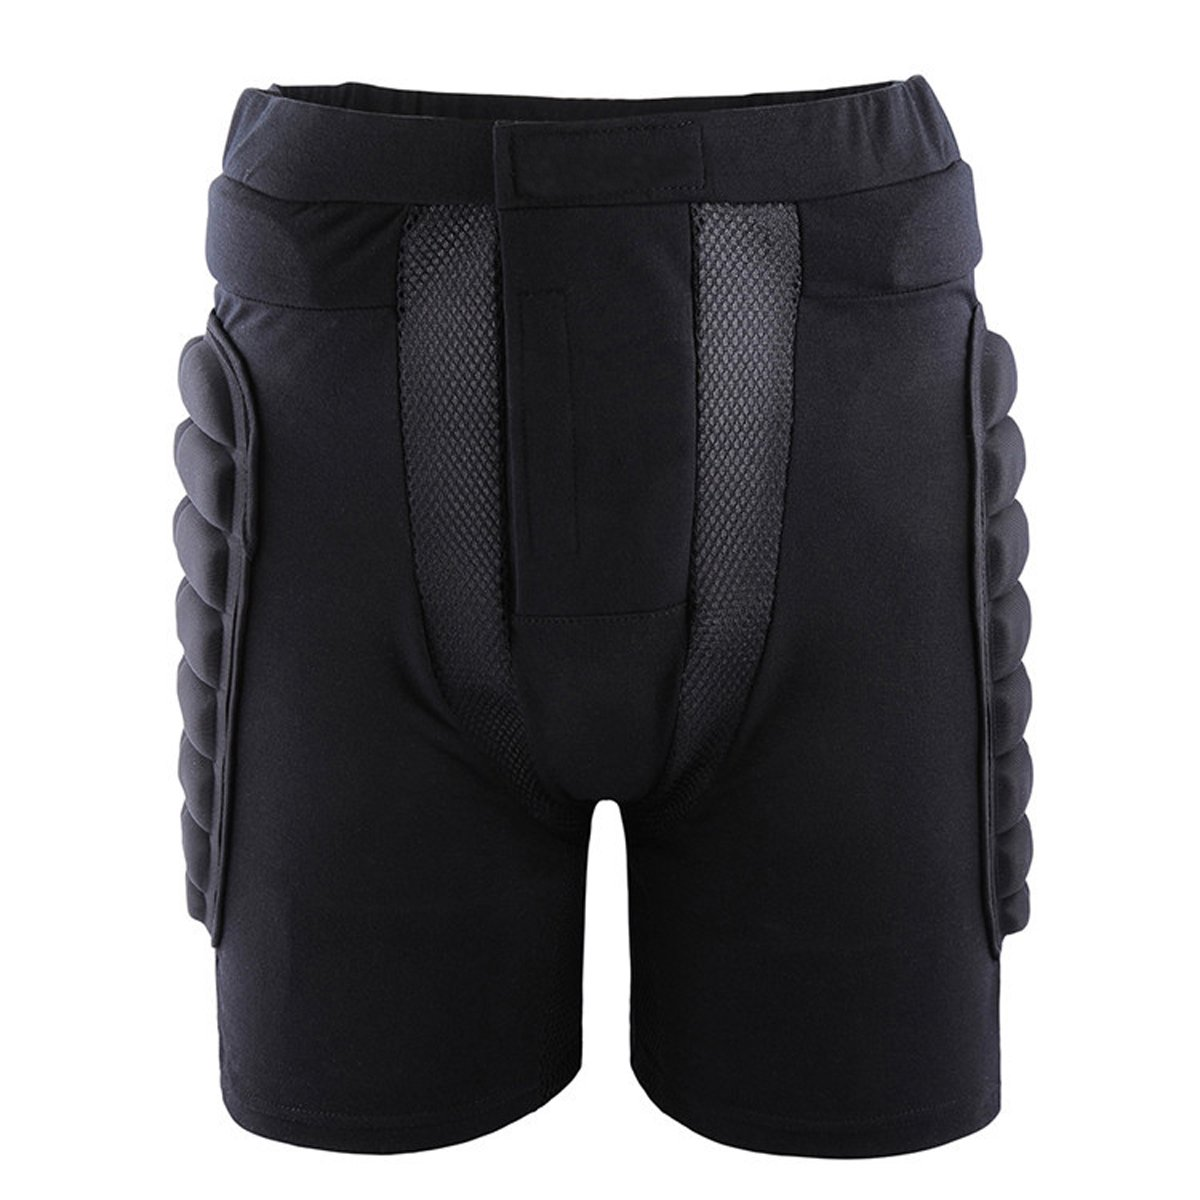 Uniquebella Impact Short 3D Padded Shorts Protective Hip For Children Aldult For Snowboard Skating Skiing Roller Padded Pants Protective Gear, Black (3XL)